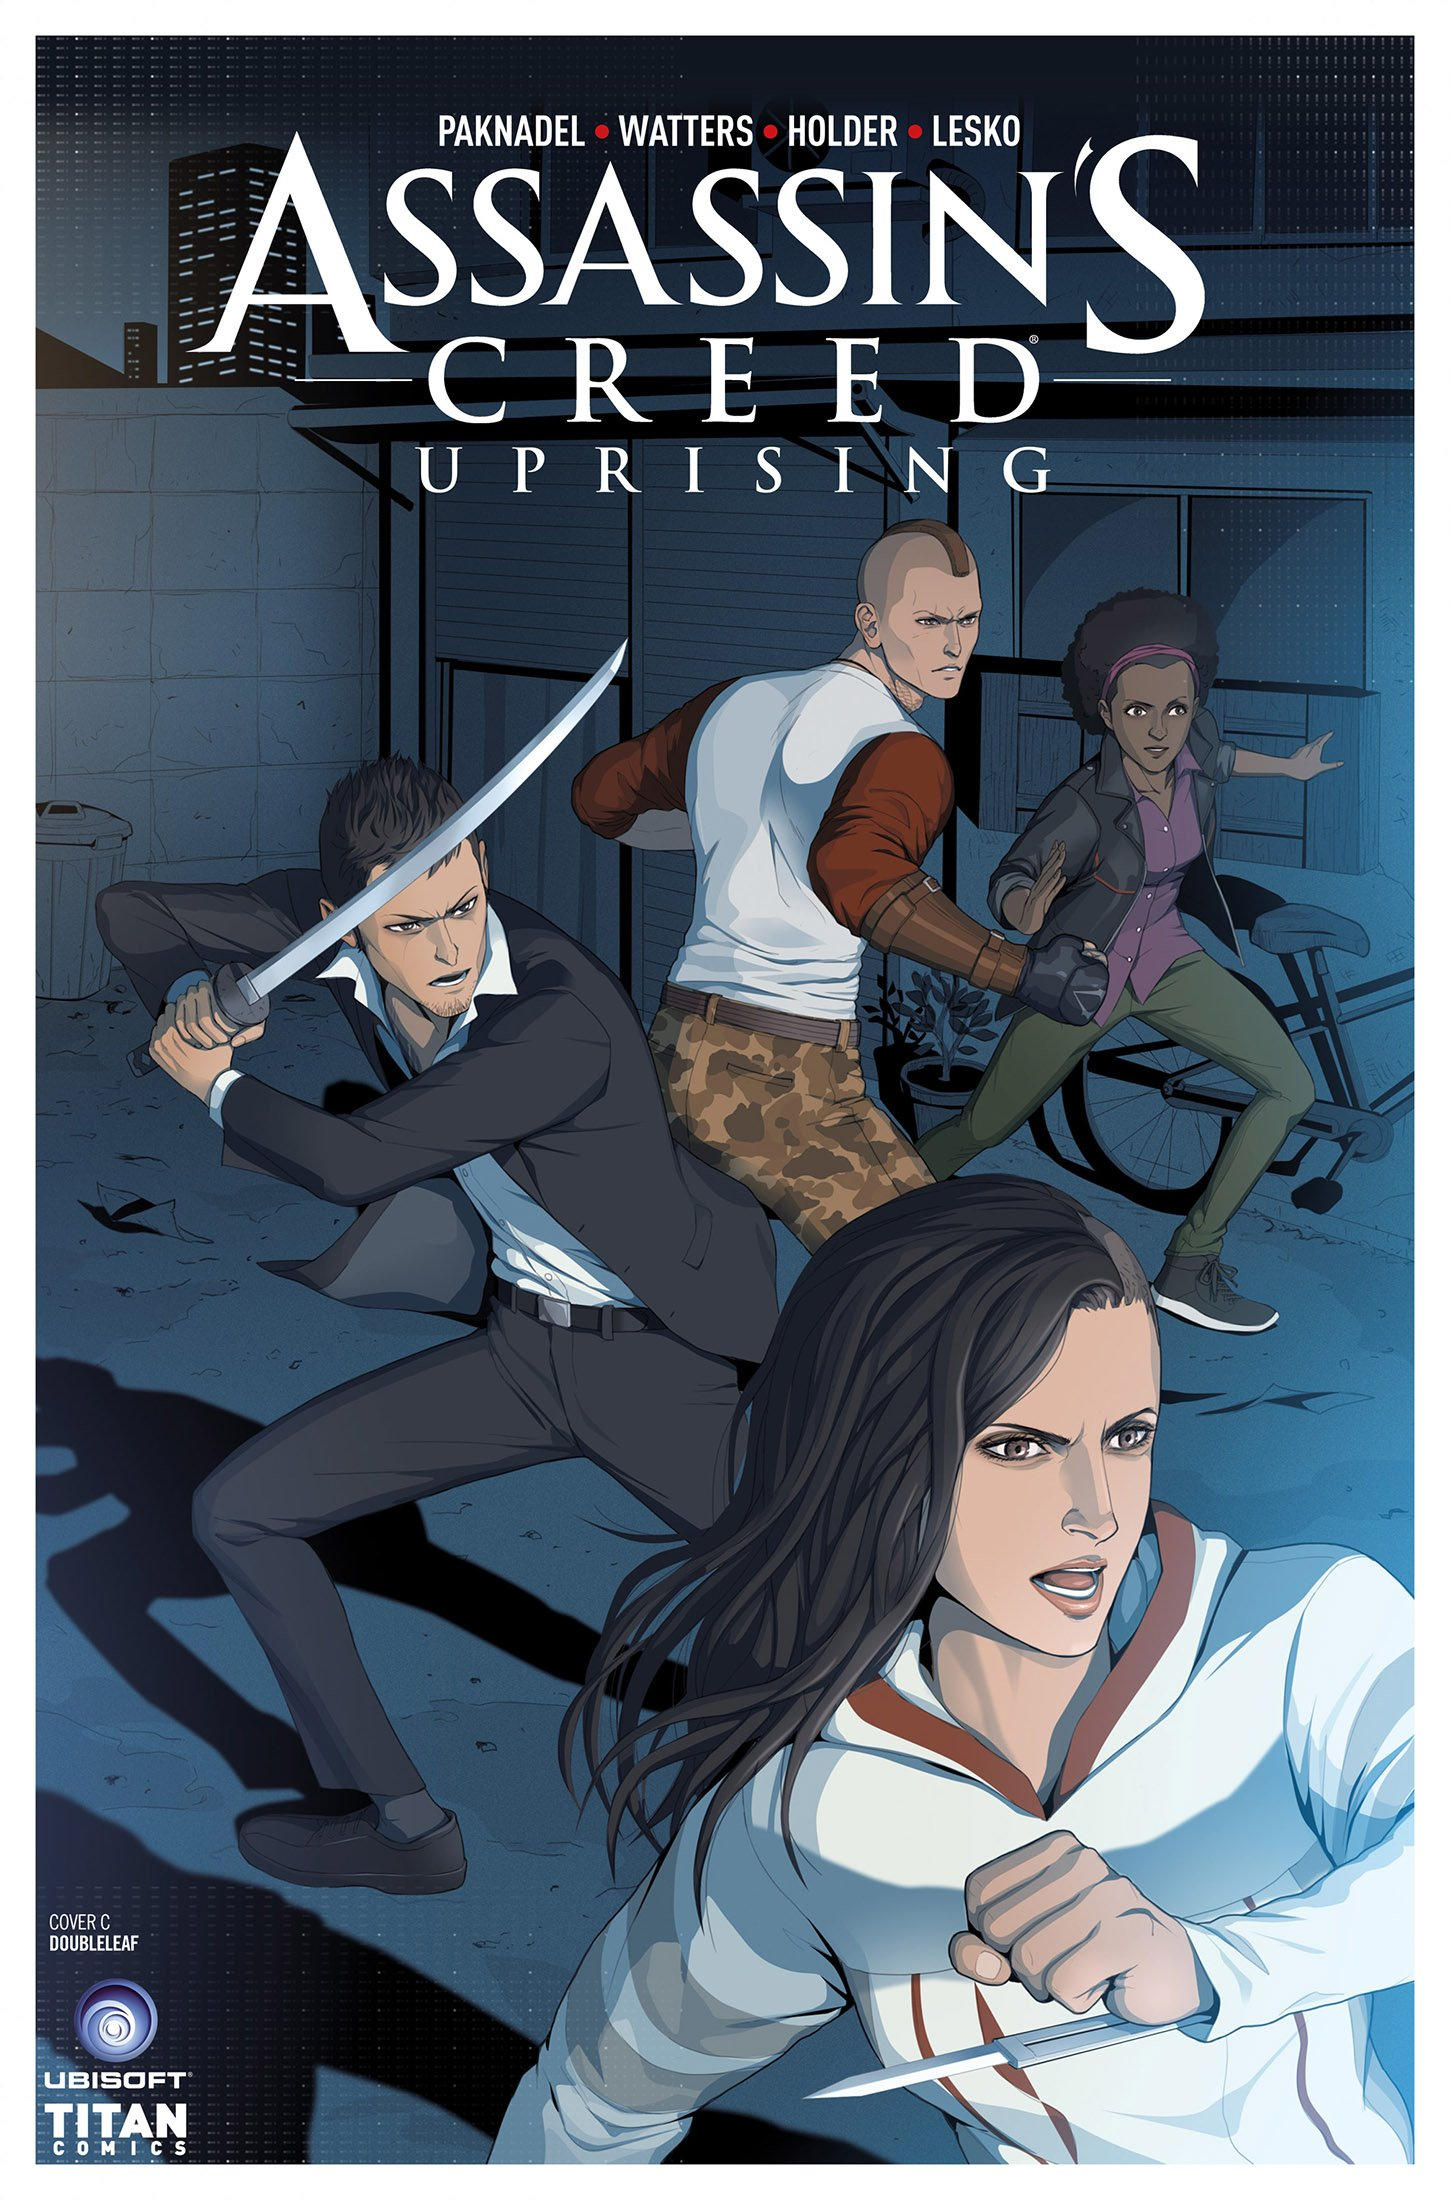 Assassin's Creed - Uprising 05 (August 2017) (cover c)